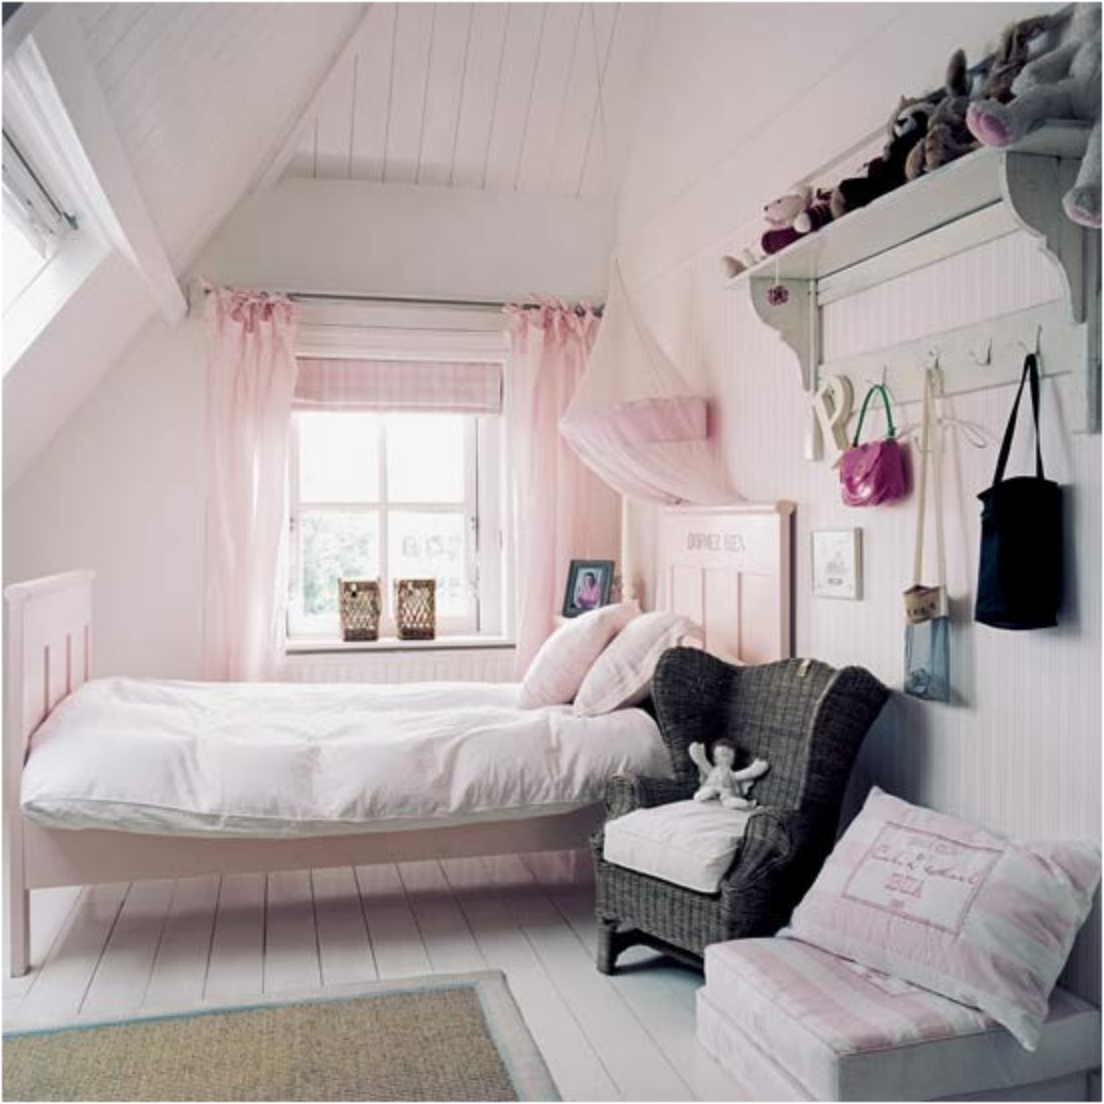 White bedroom with some pink and grey